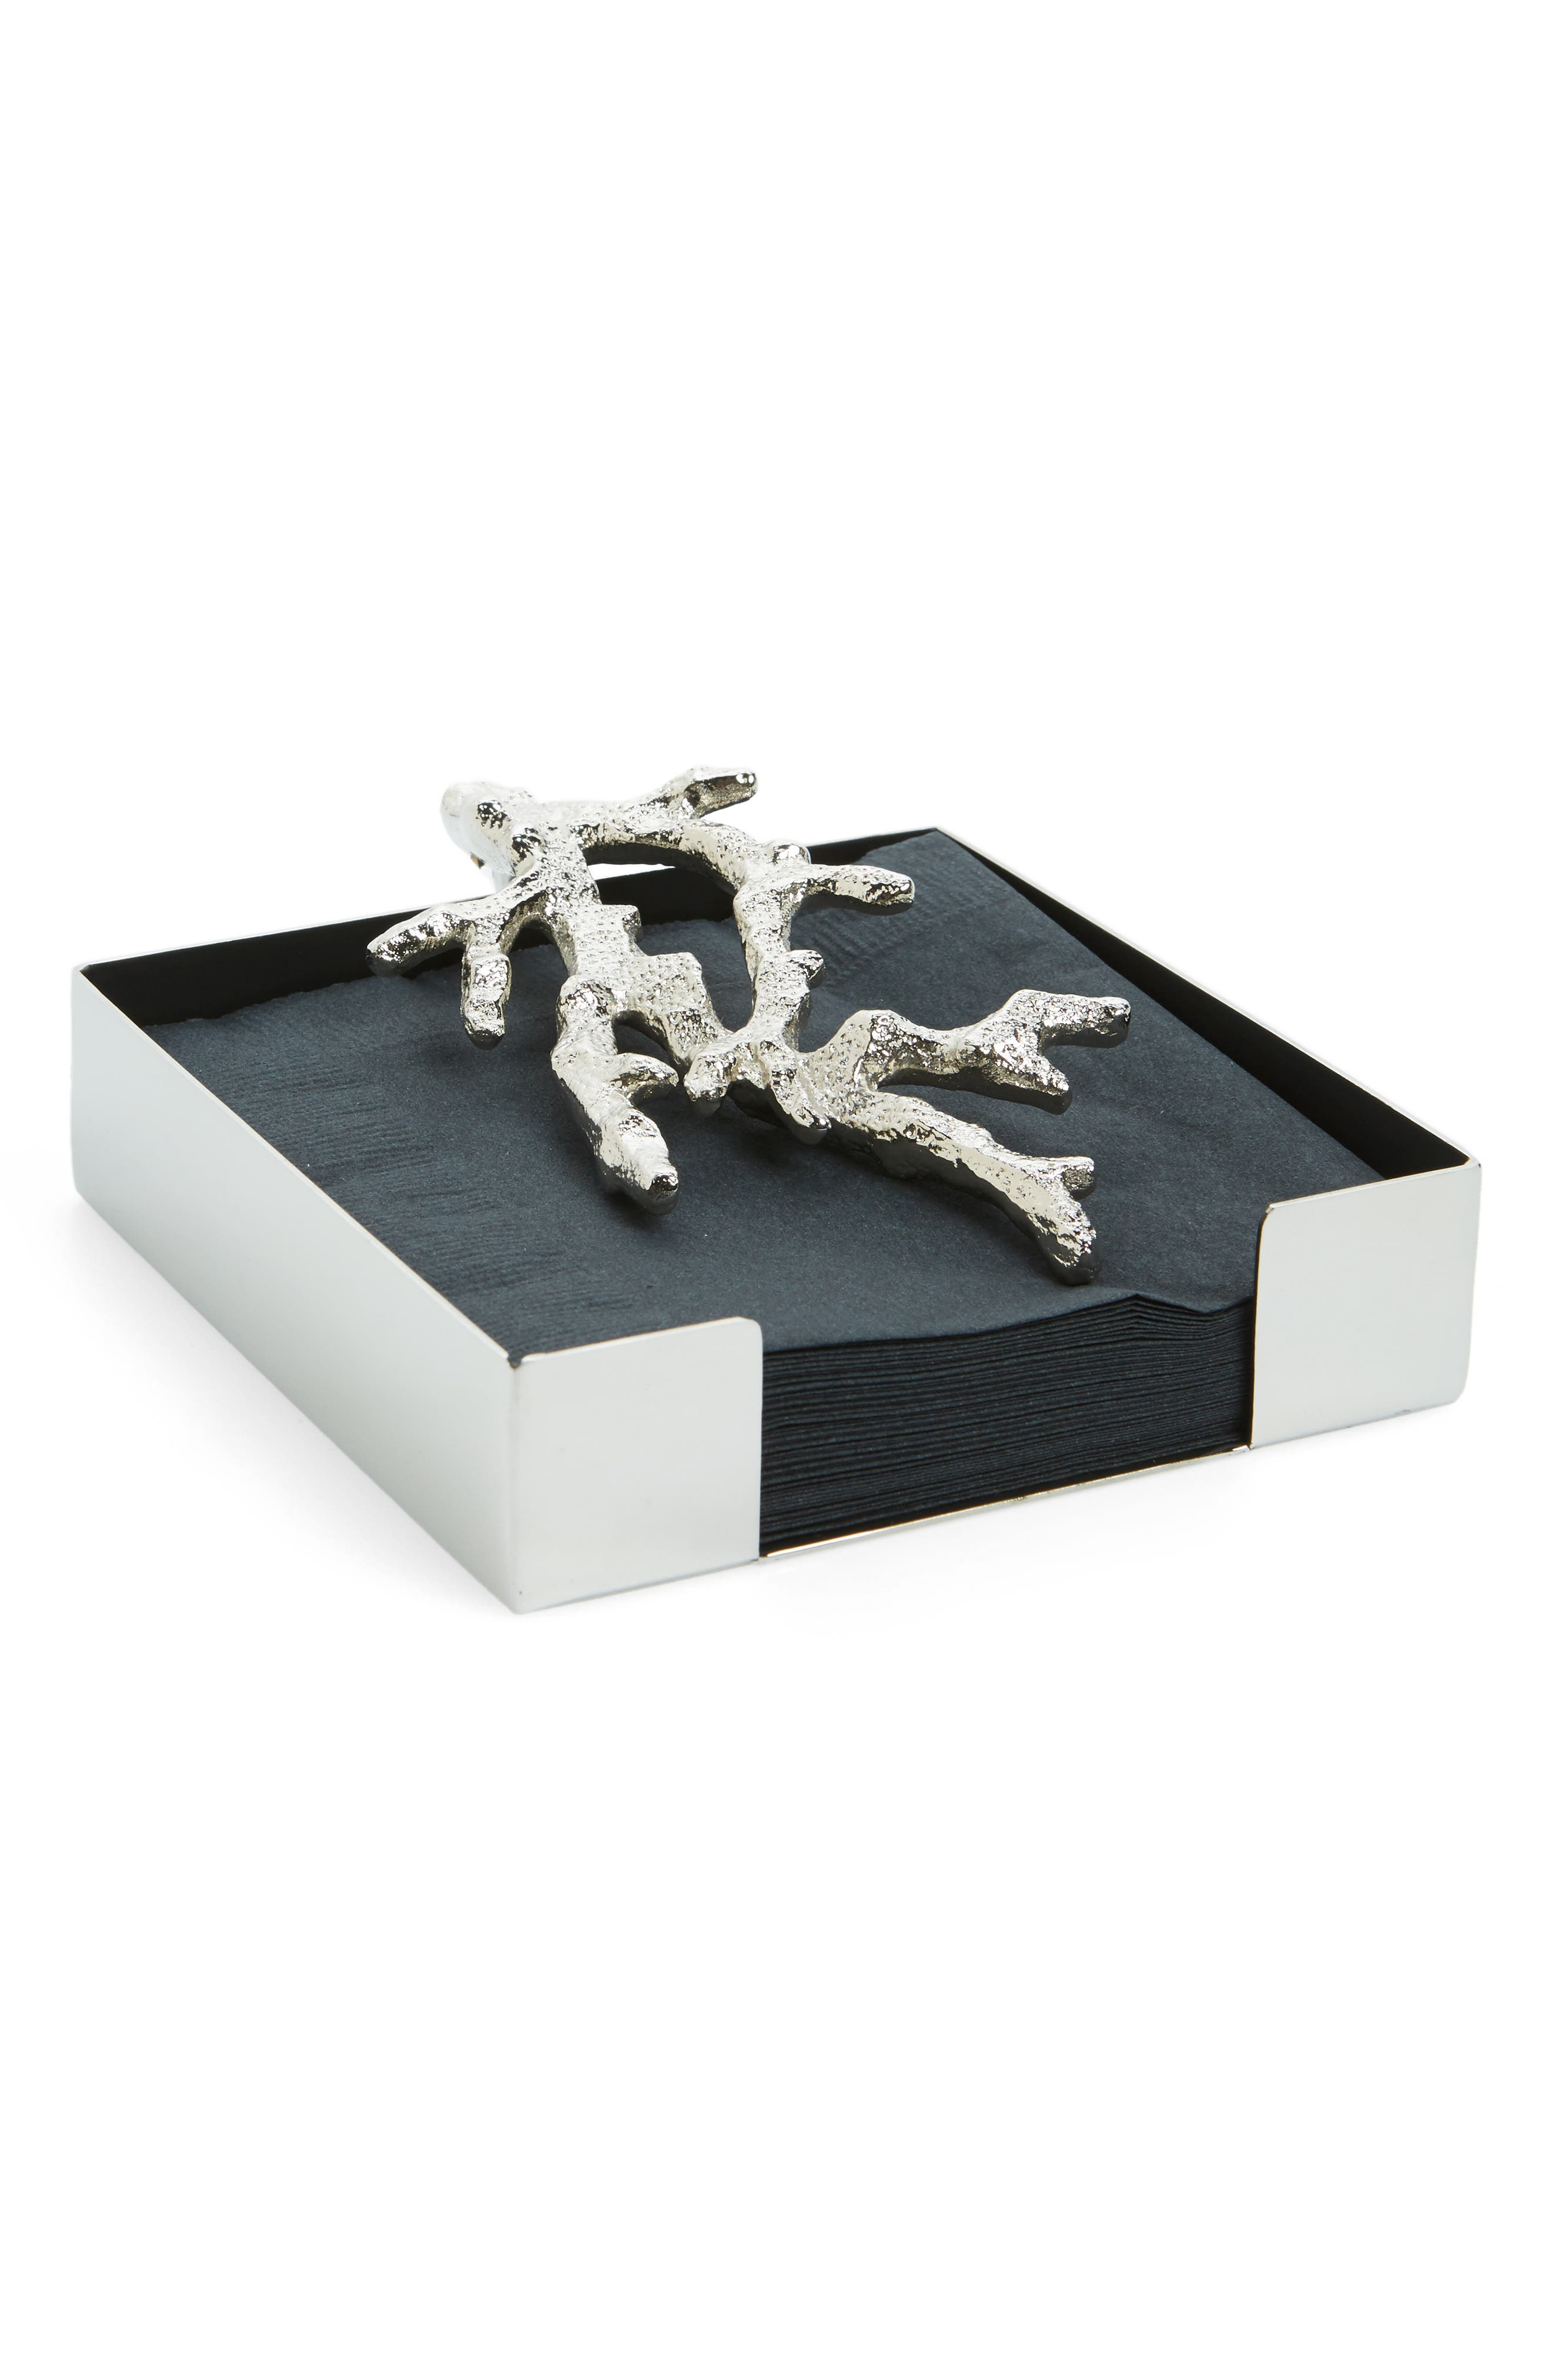 Michael Aram 'Ocean Coral' Cocktail Napkin Holder